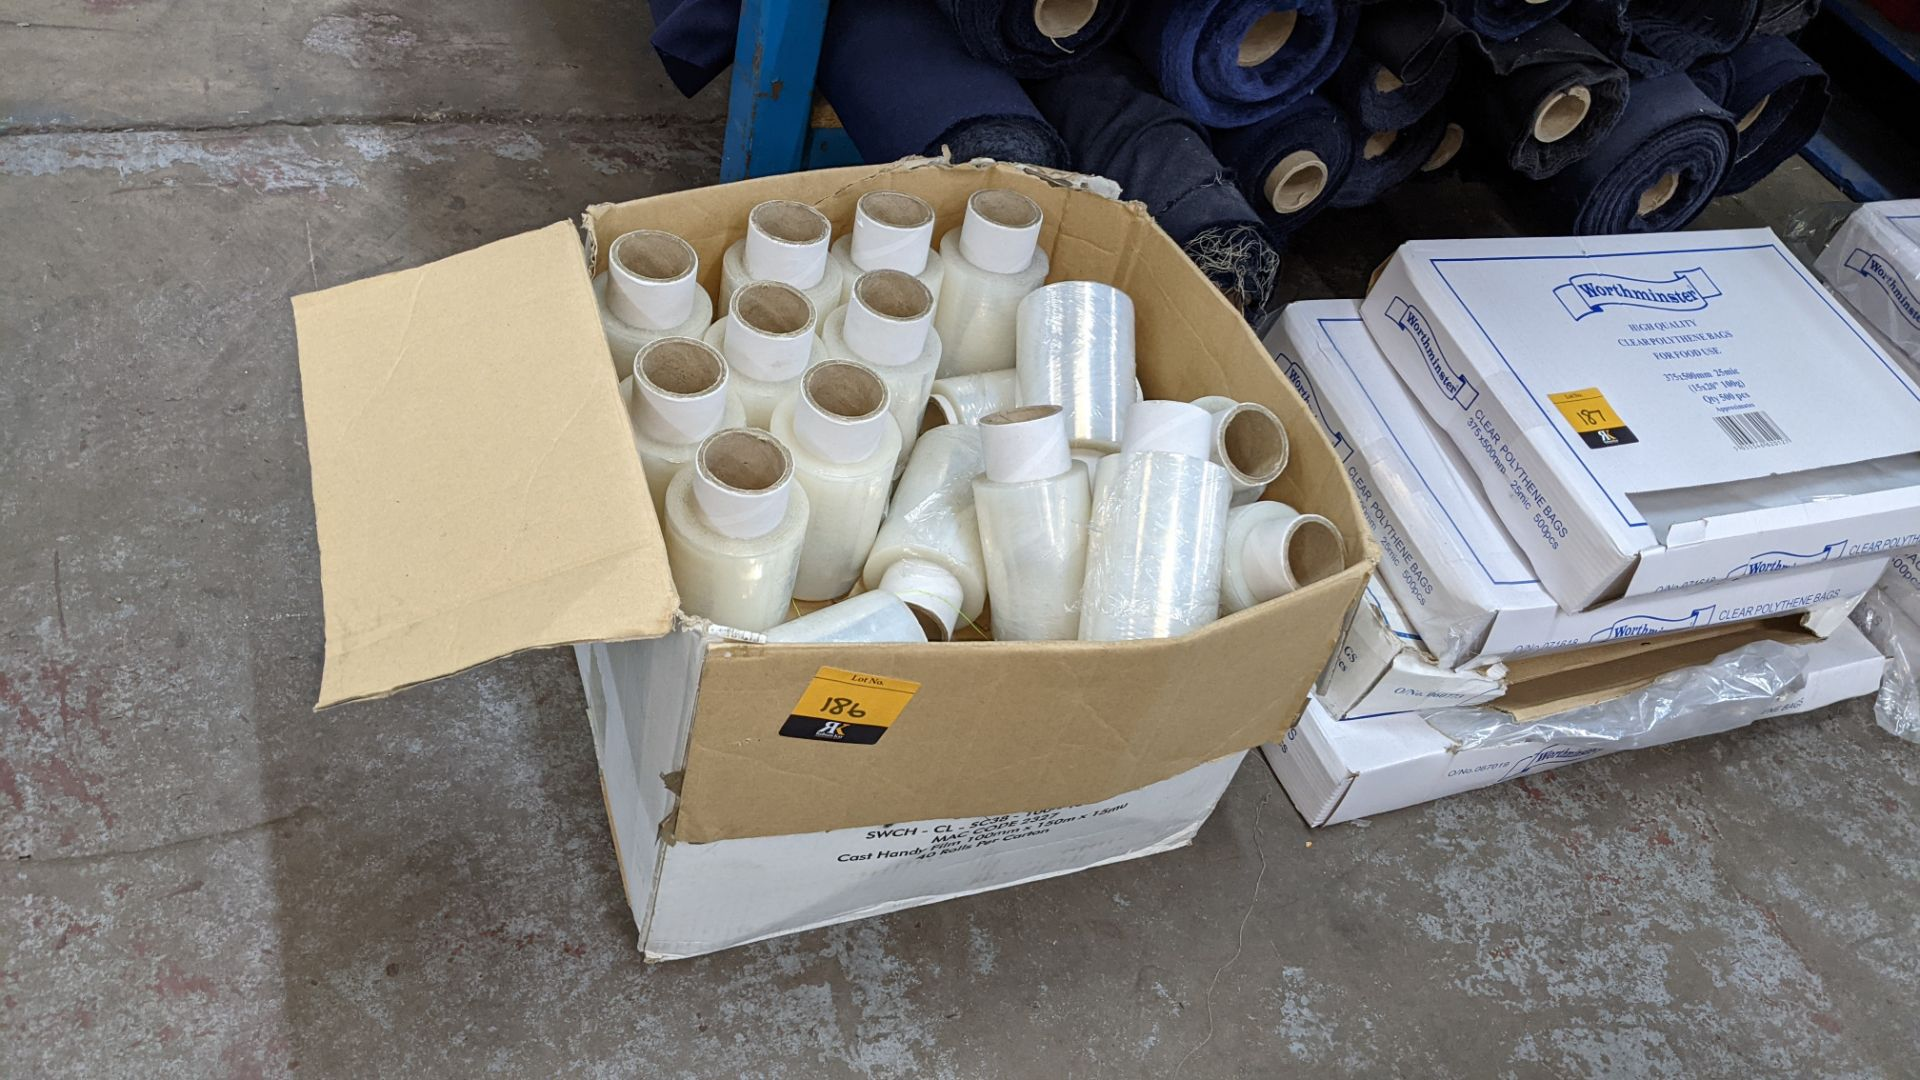 Box of clear plastic tape - Image 2 of 4